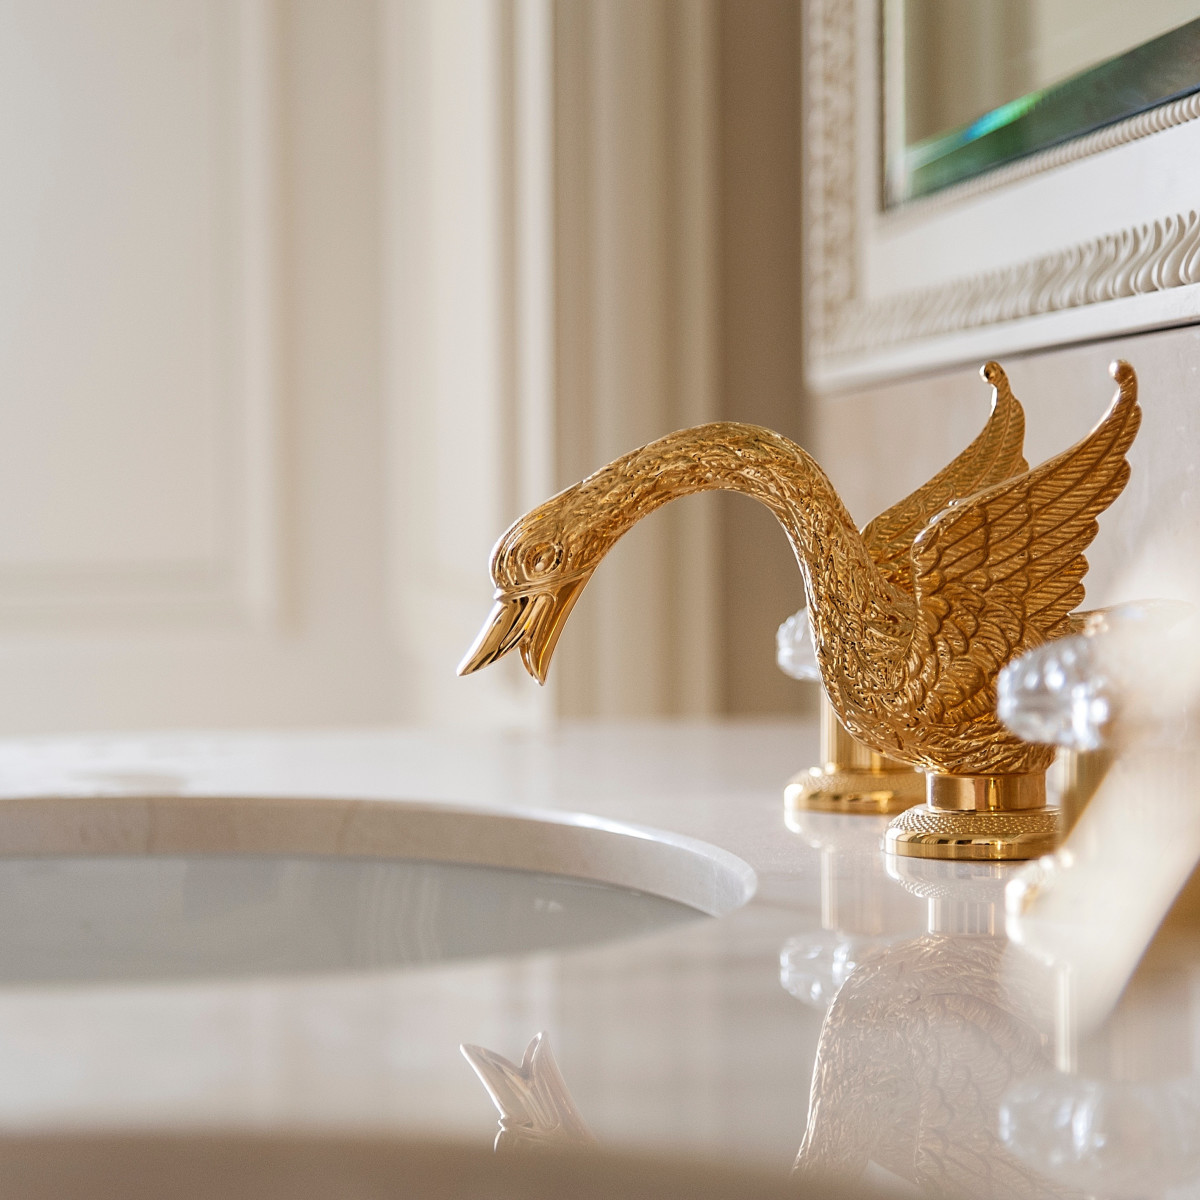 News, Ritz Hotel Paris, Swan fixtures, Jan. 2016